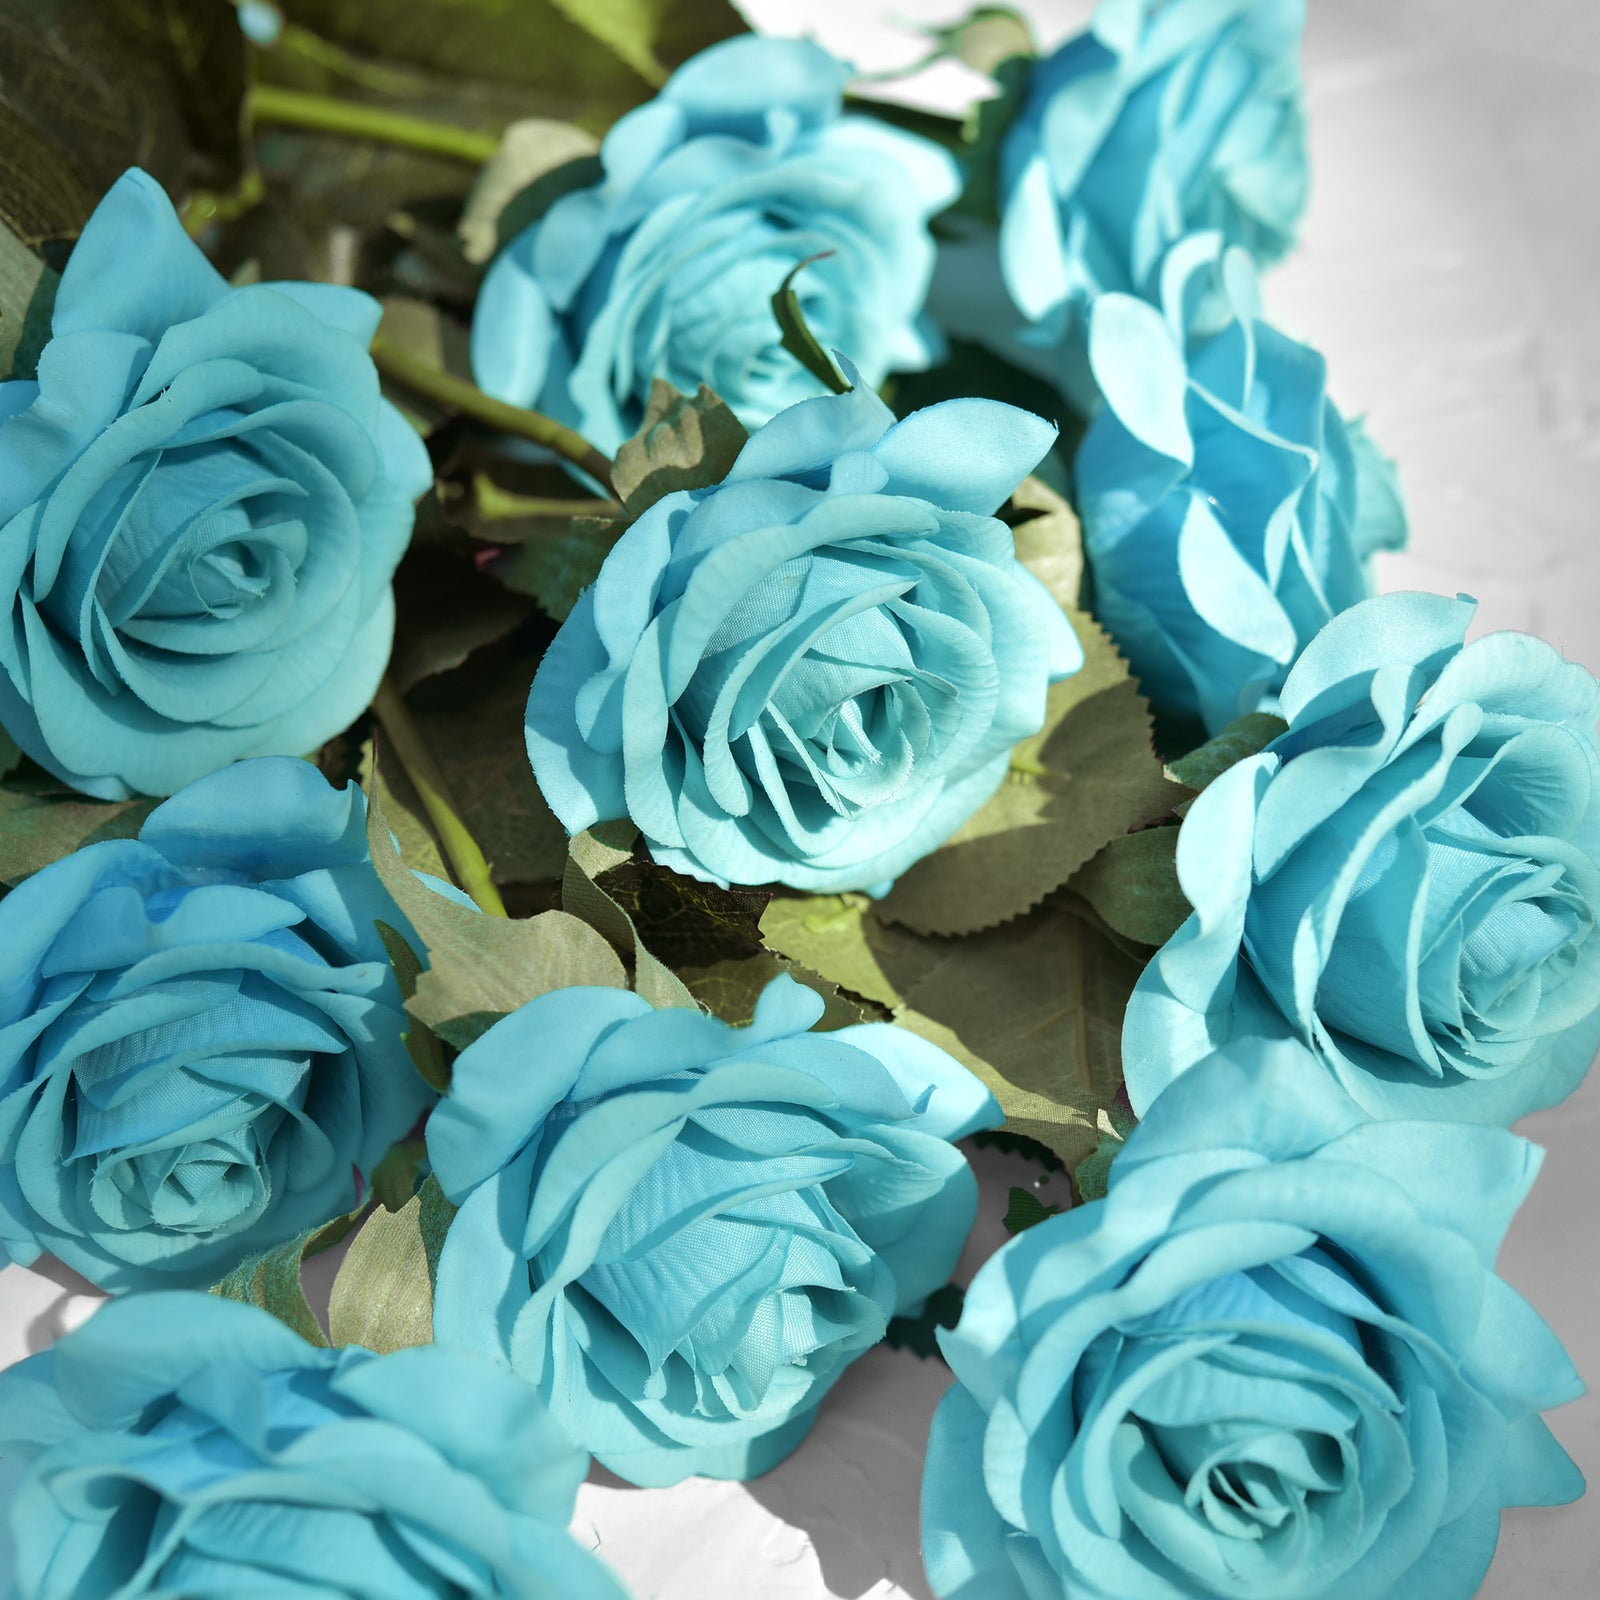 Real Touch 10 Stems Dark Turquoise Silk Artificial Roses Flowers 'Petals Feel and Look like Fresh Roses'